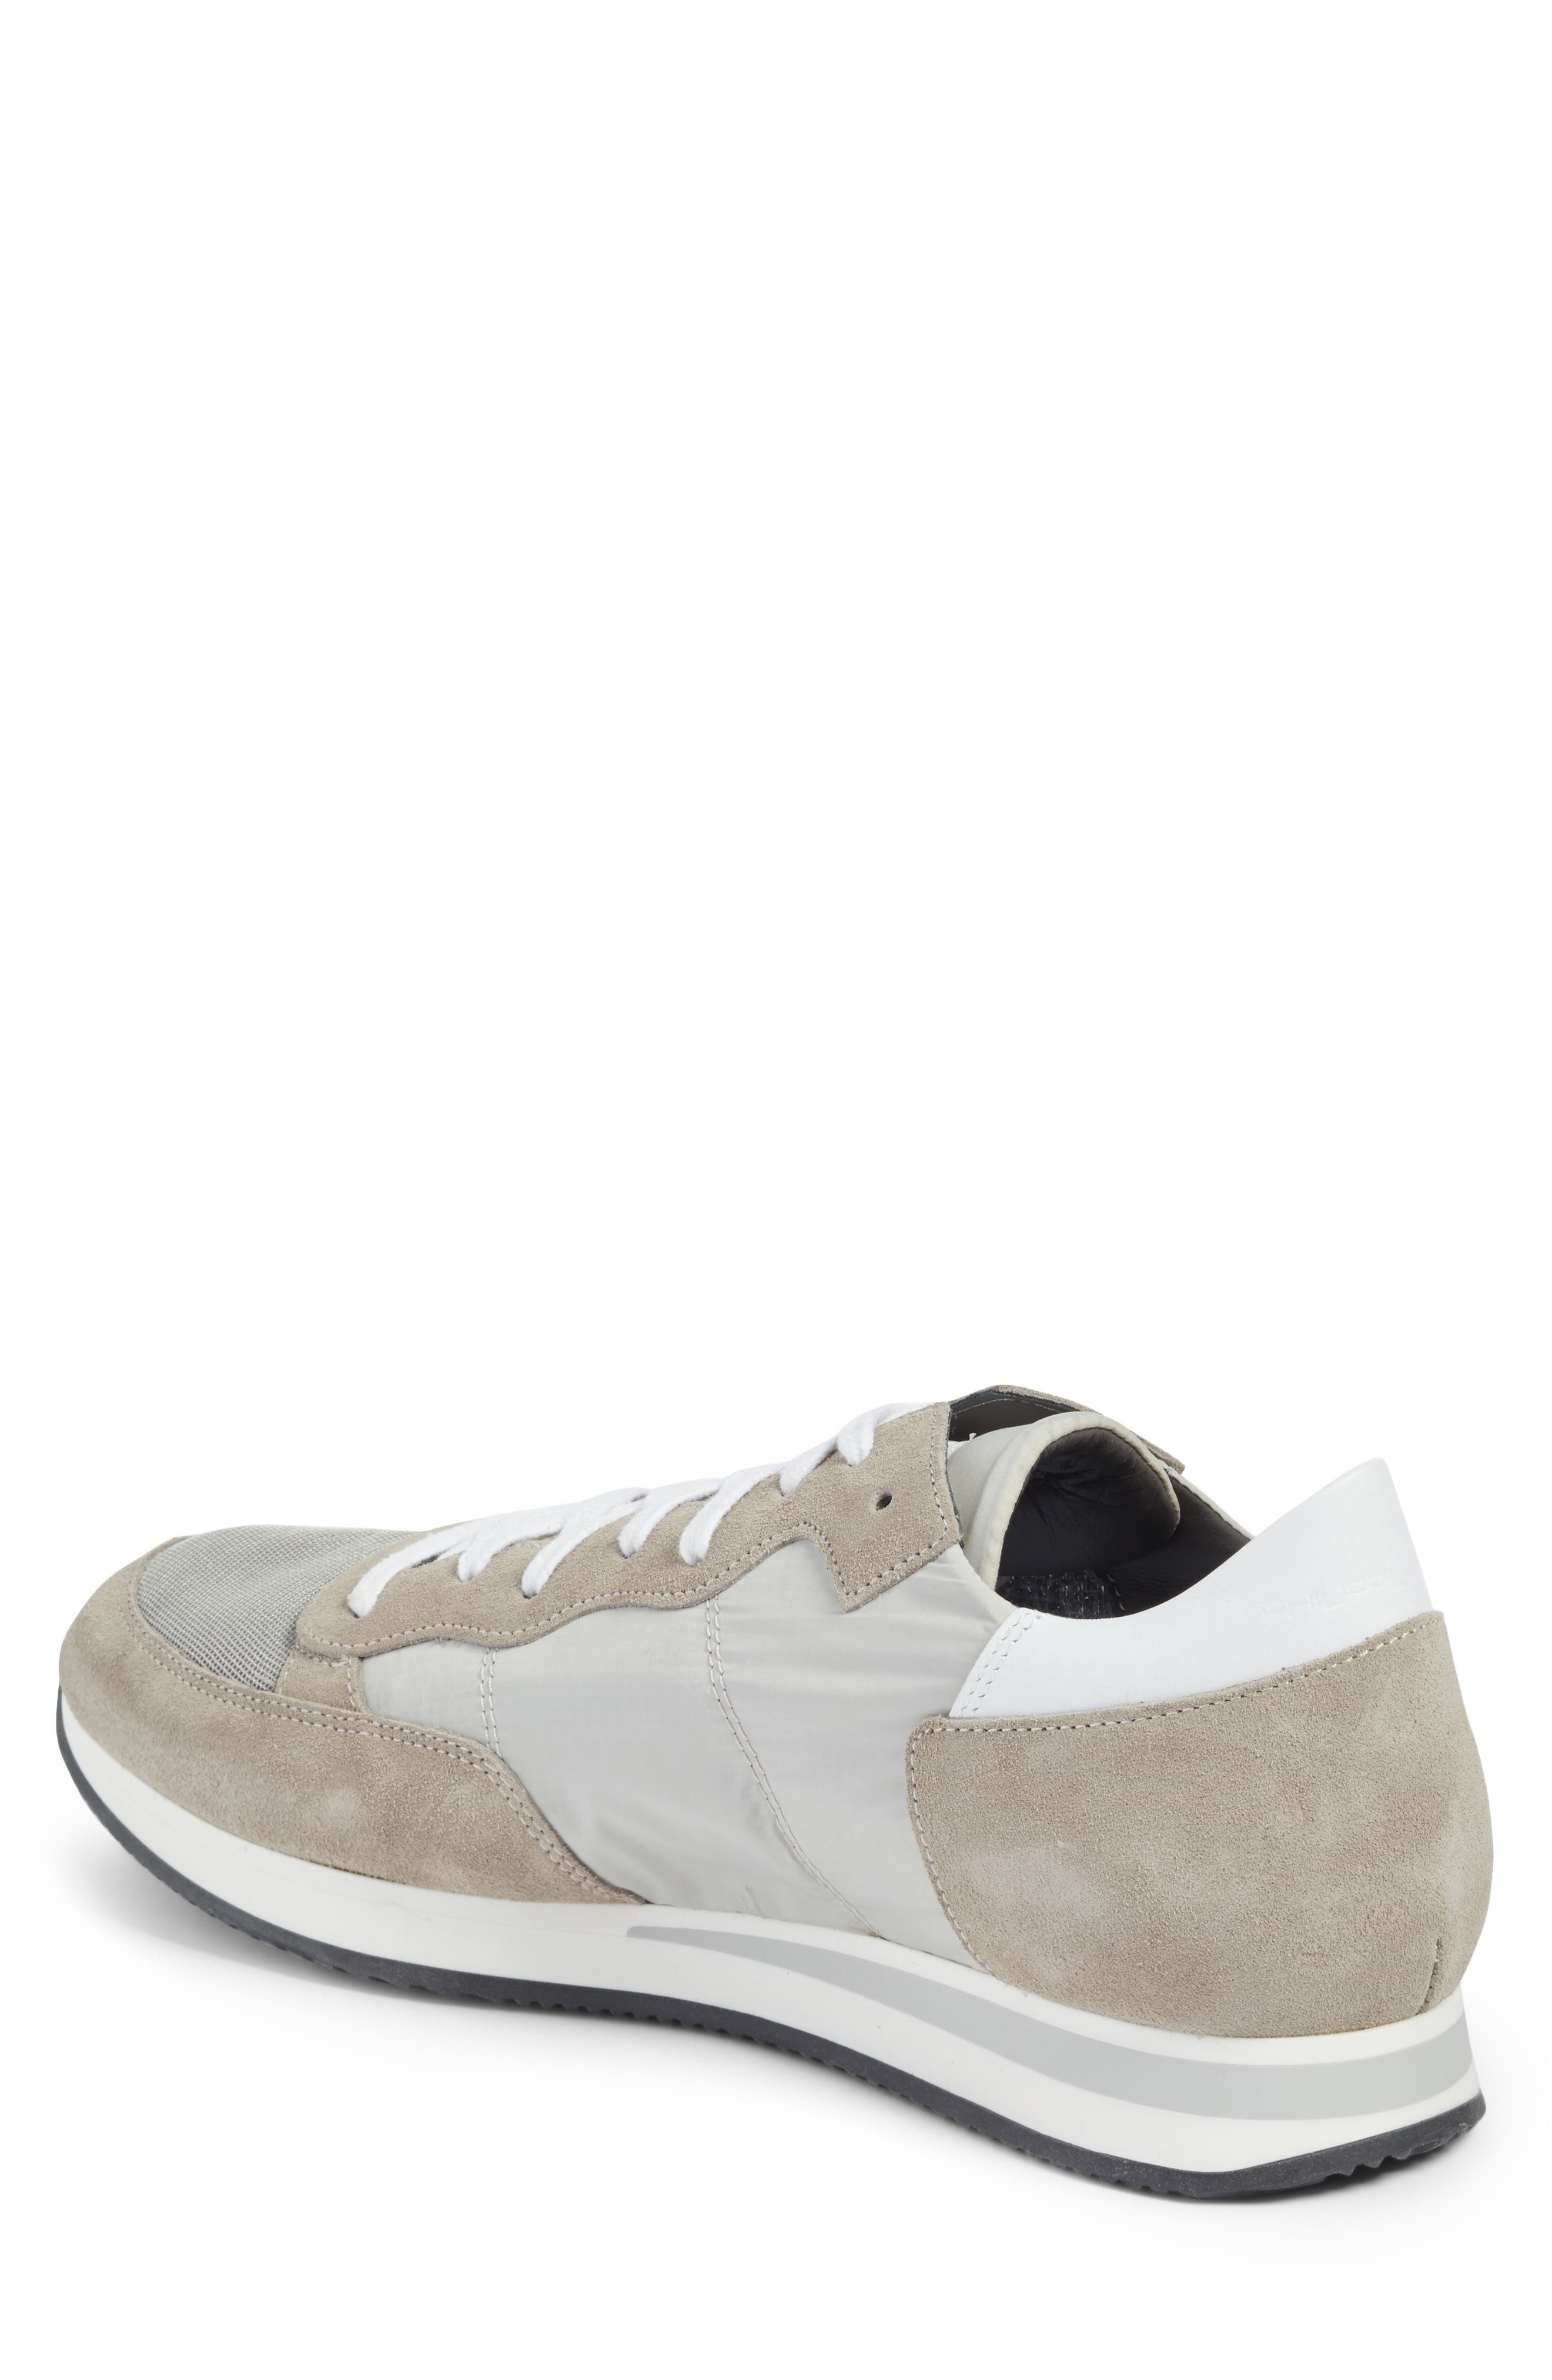 Tropez Low Top Sneaker,                             Alternate thumbnail 2, color,                             Grey/ White